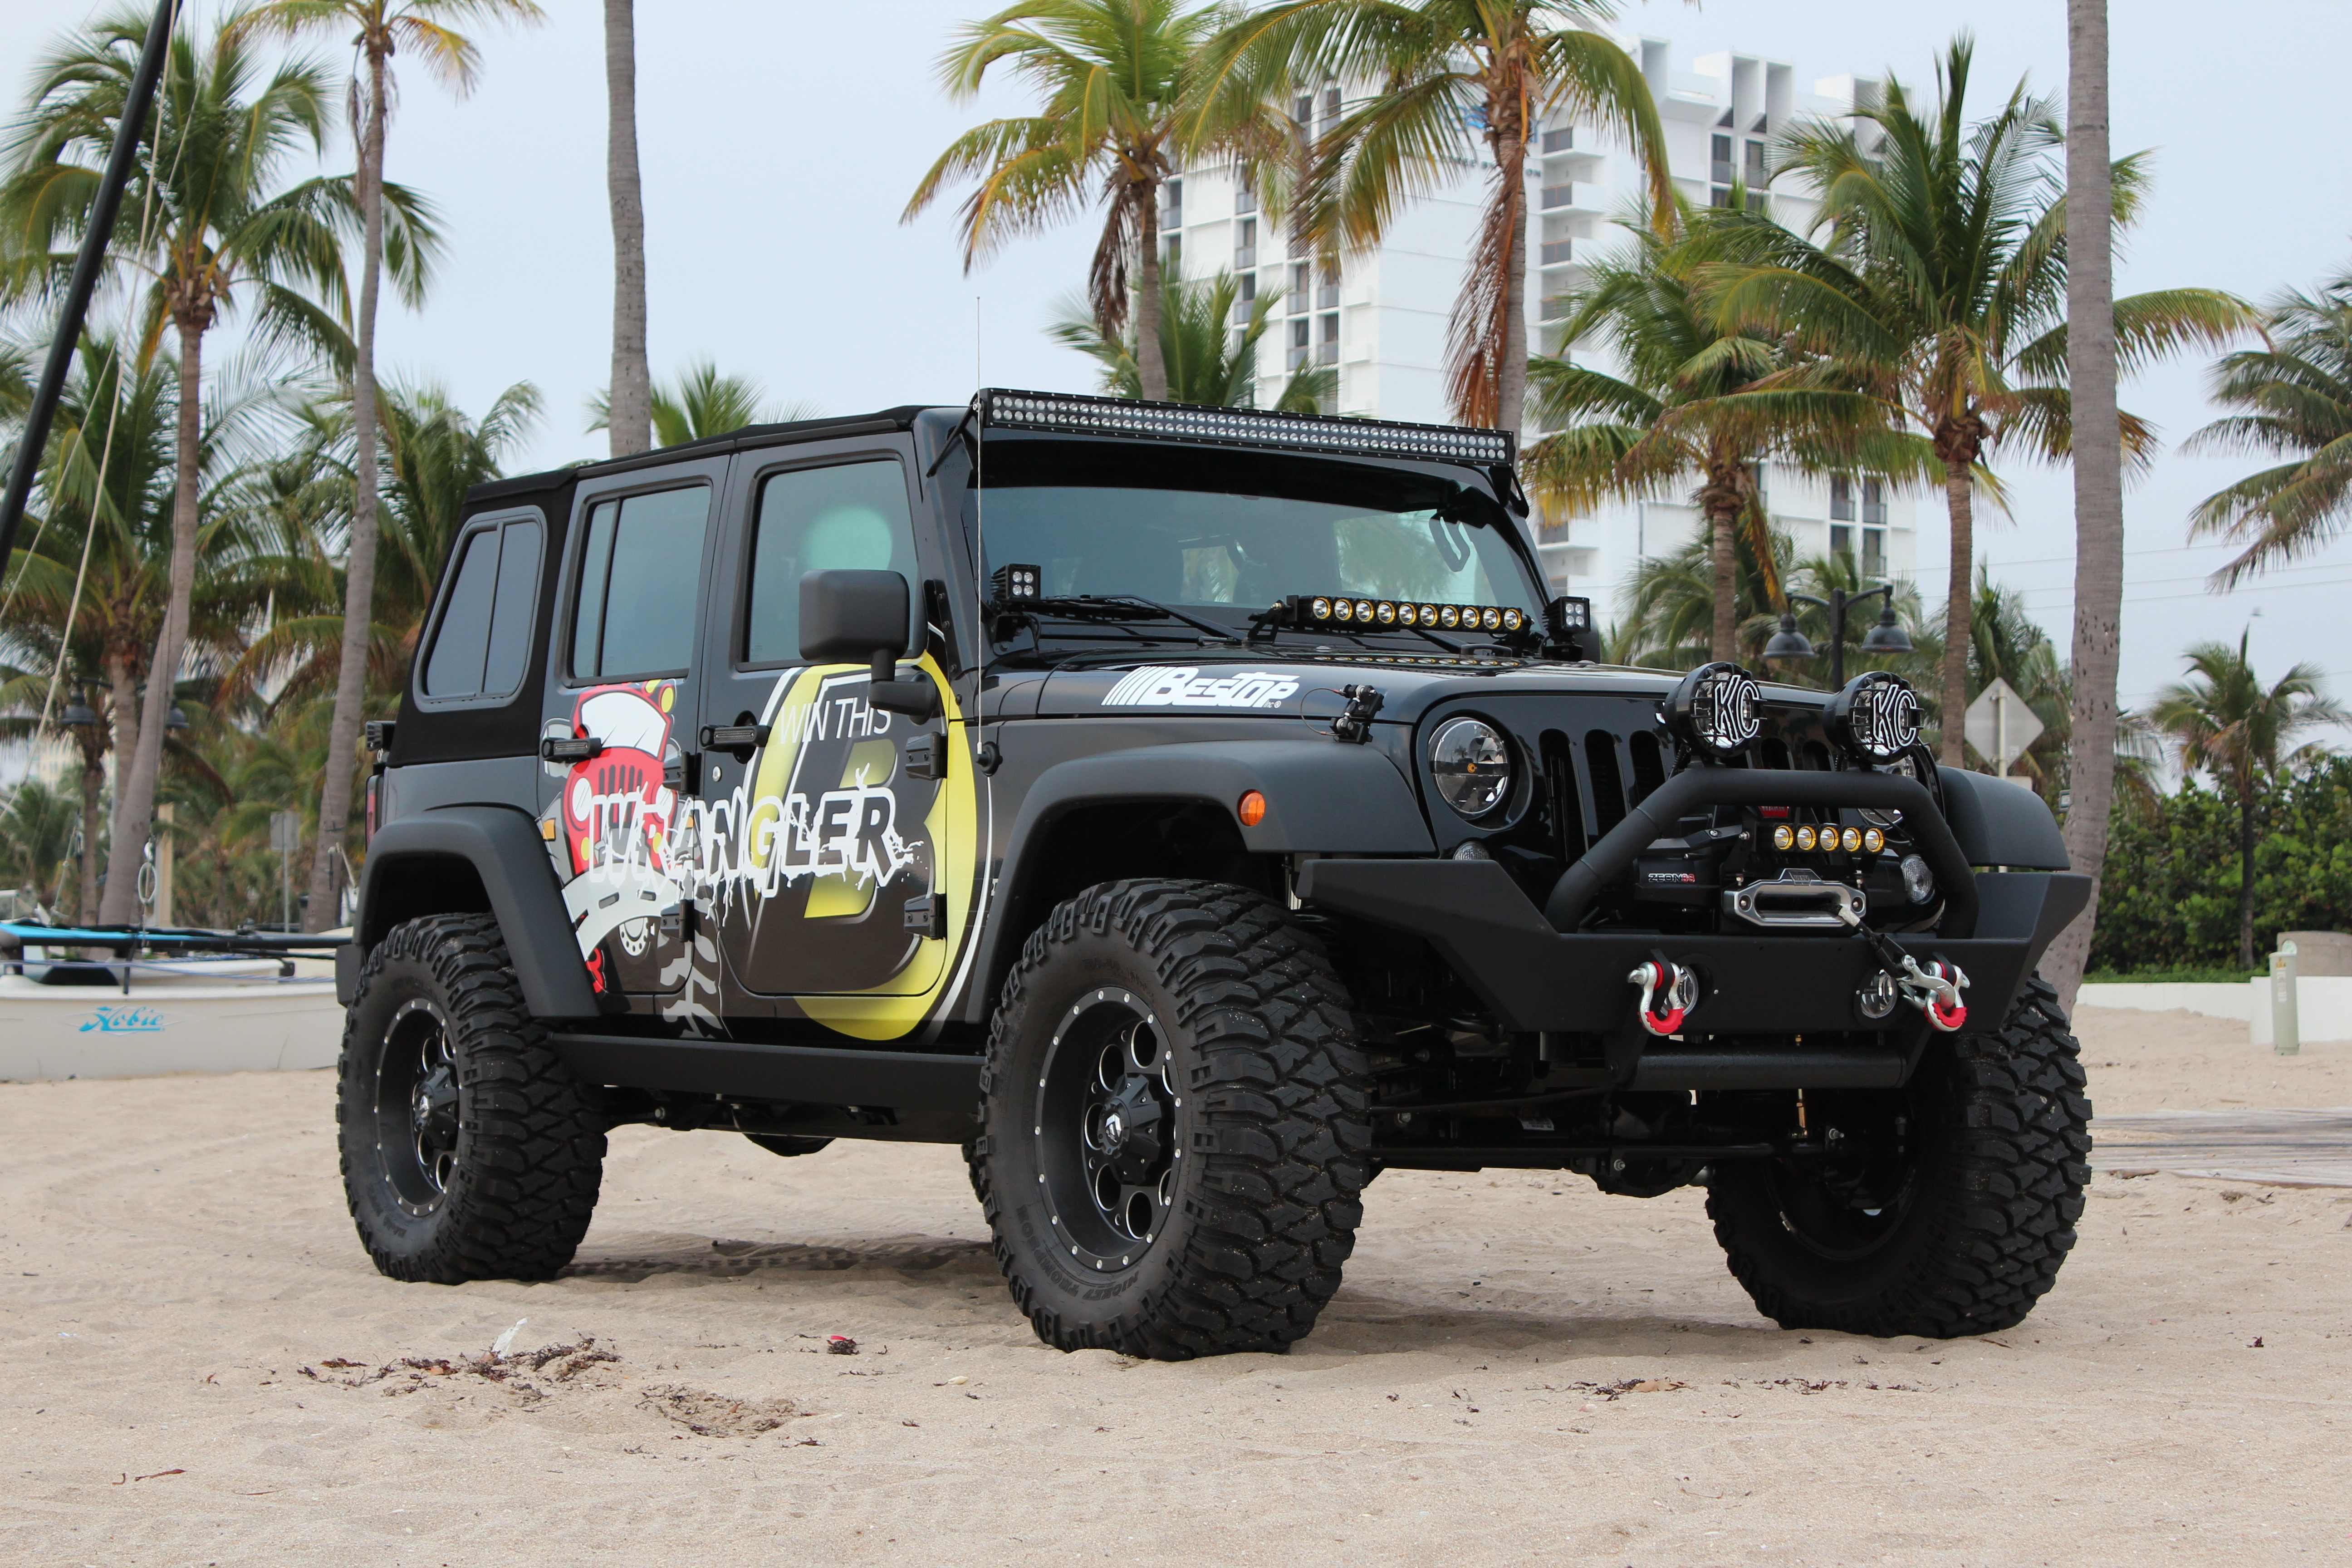 The Giveaway Jeep